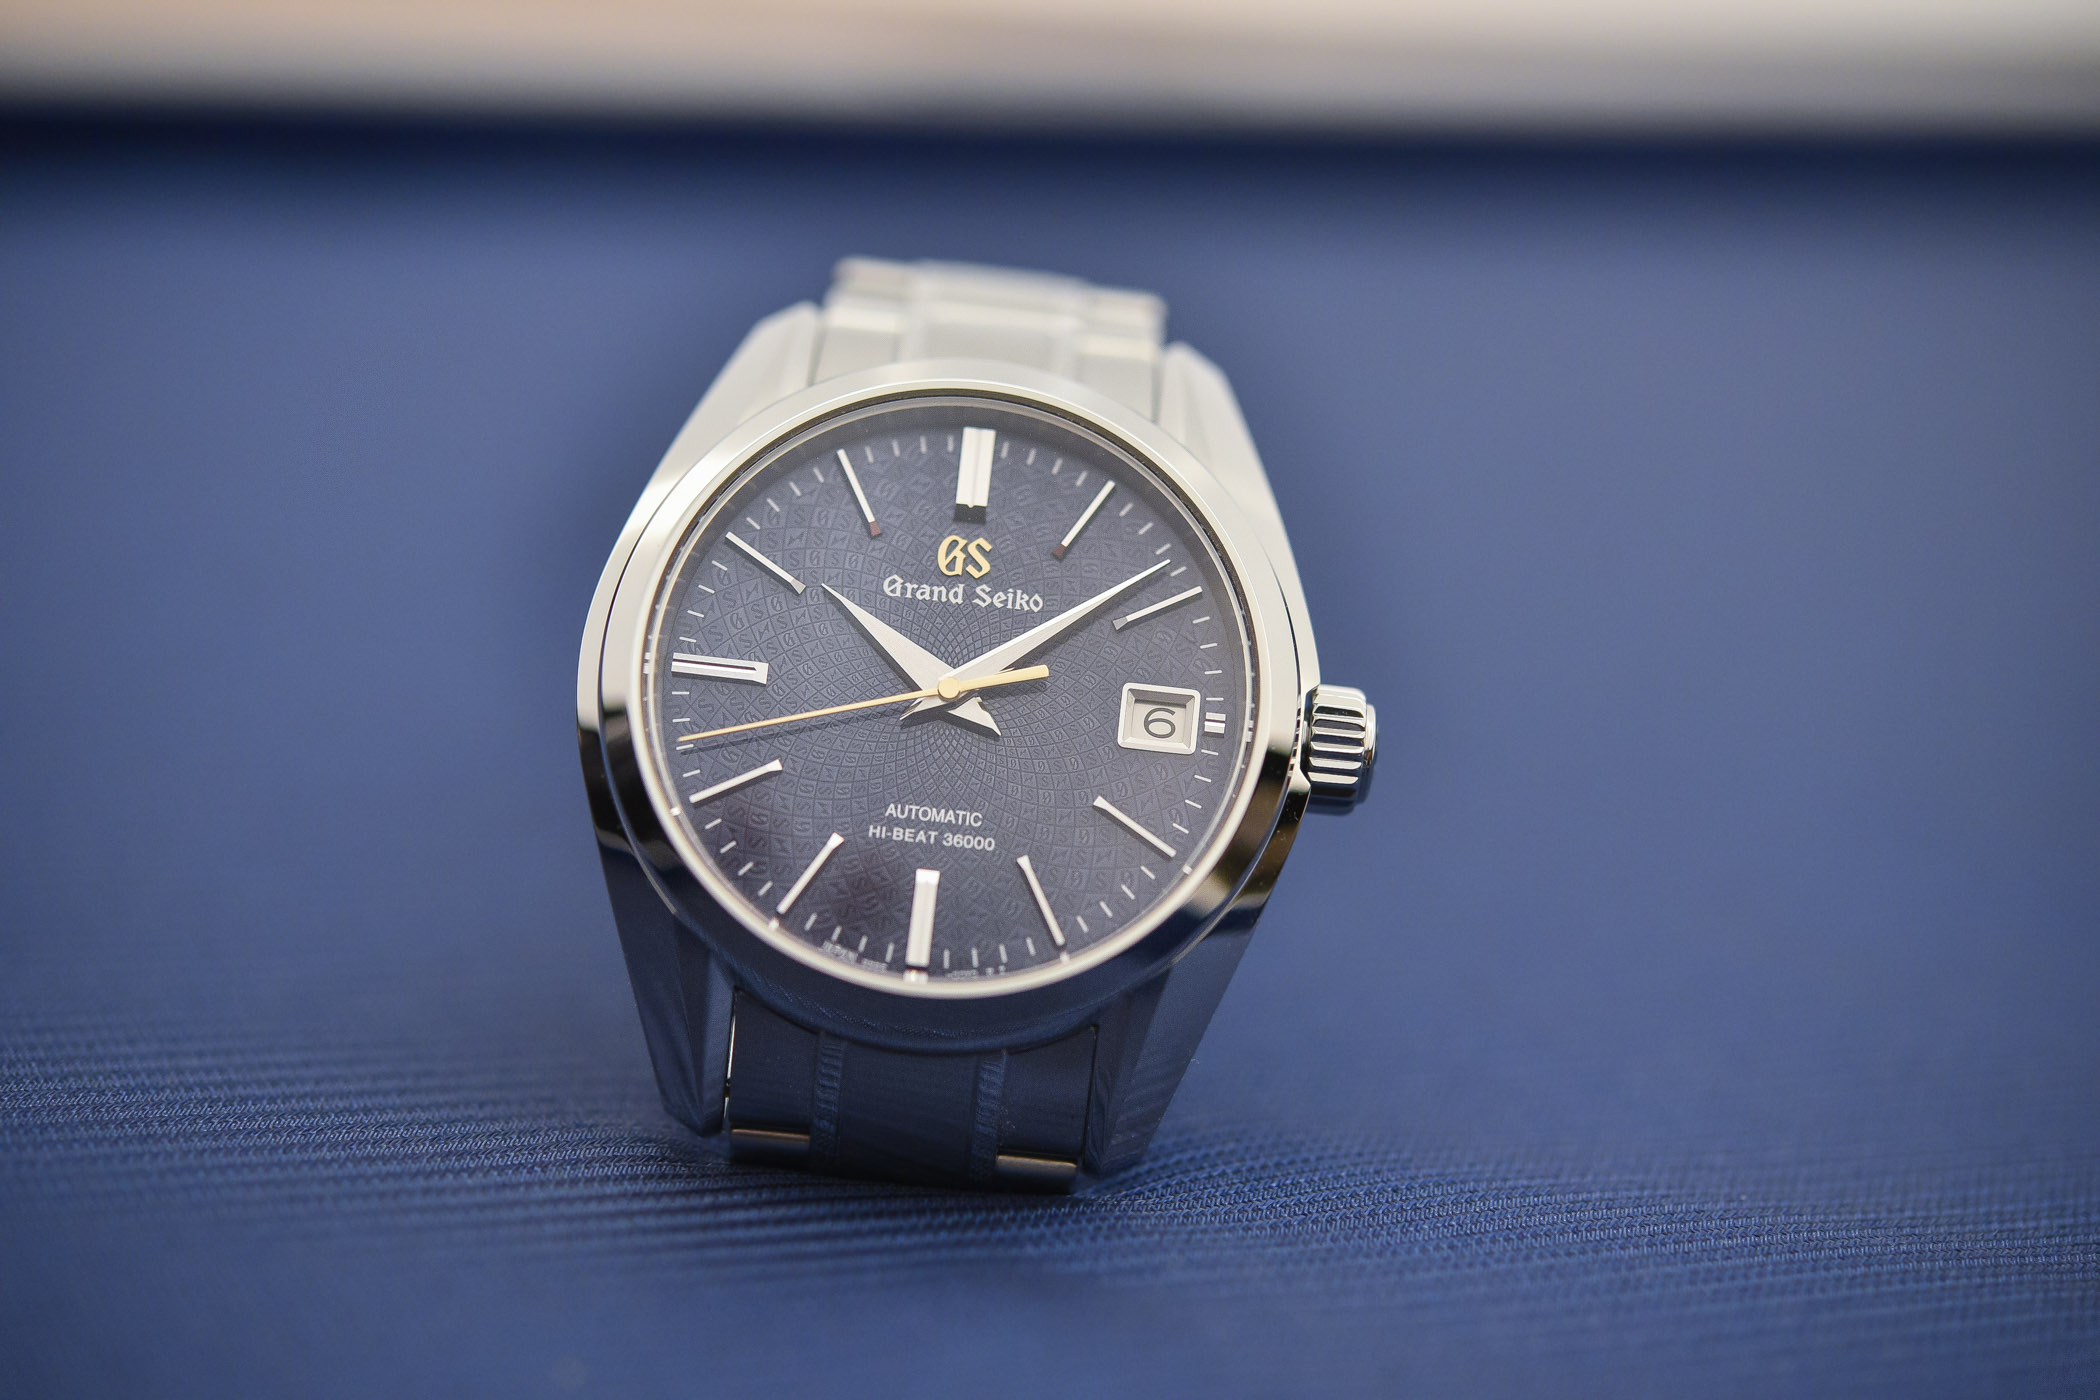 Grand Seiko Hi-Beat 36000 Calibre 9S 20th-Anniversary SBGH267